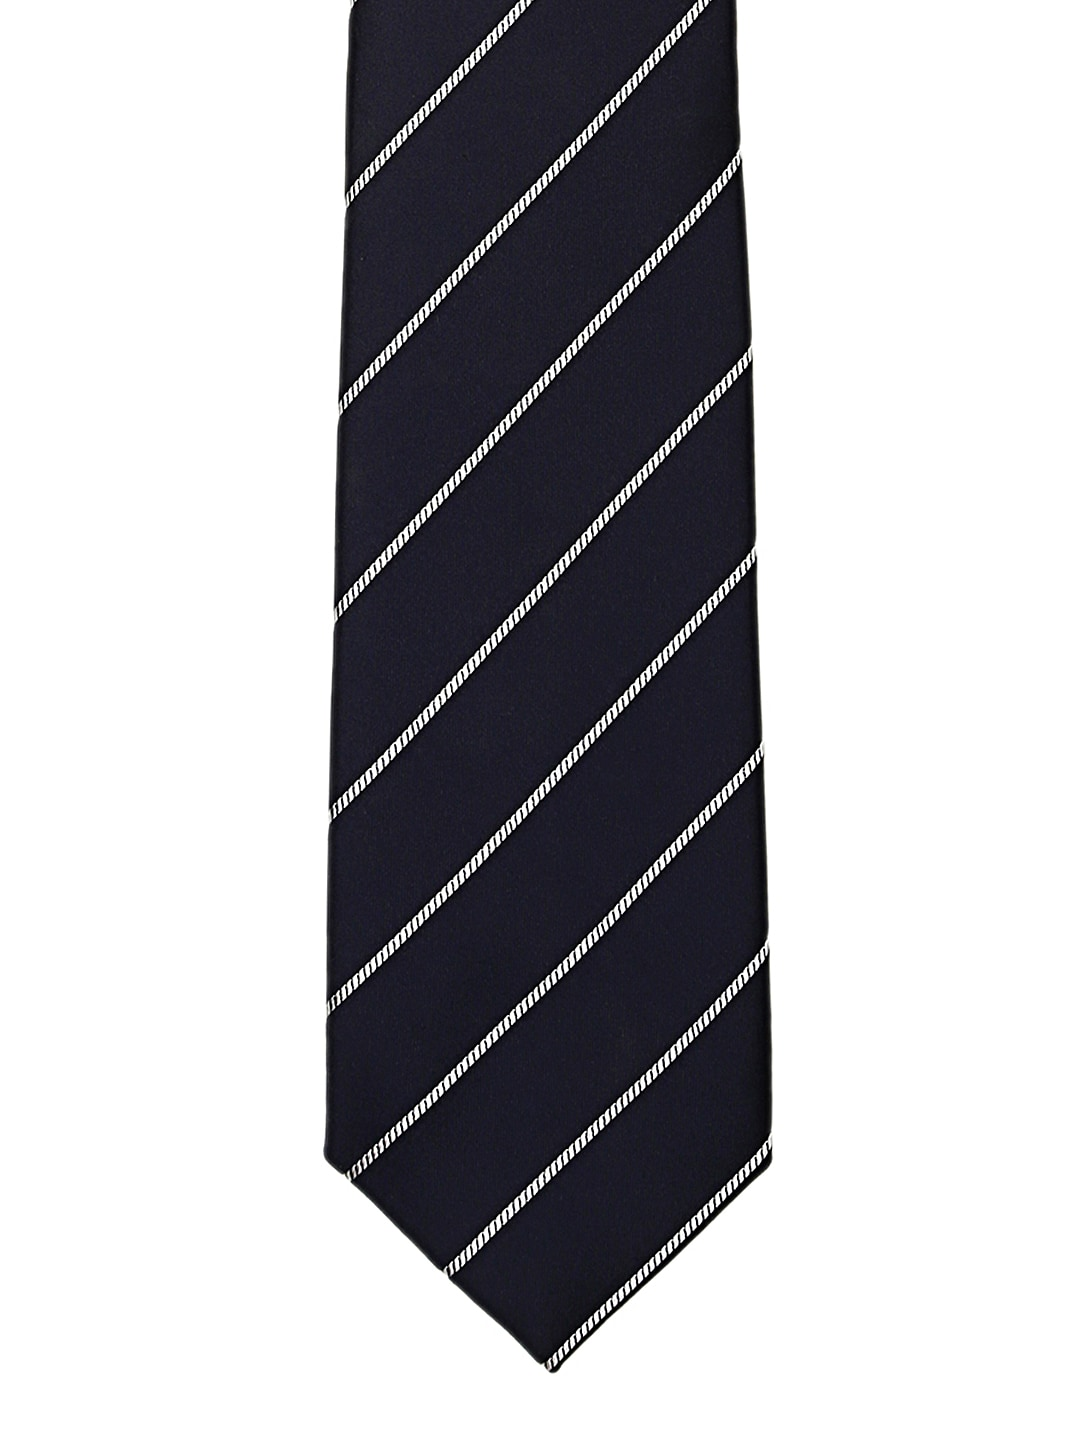 Tossido Navy & White Striped Tie